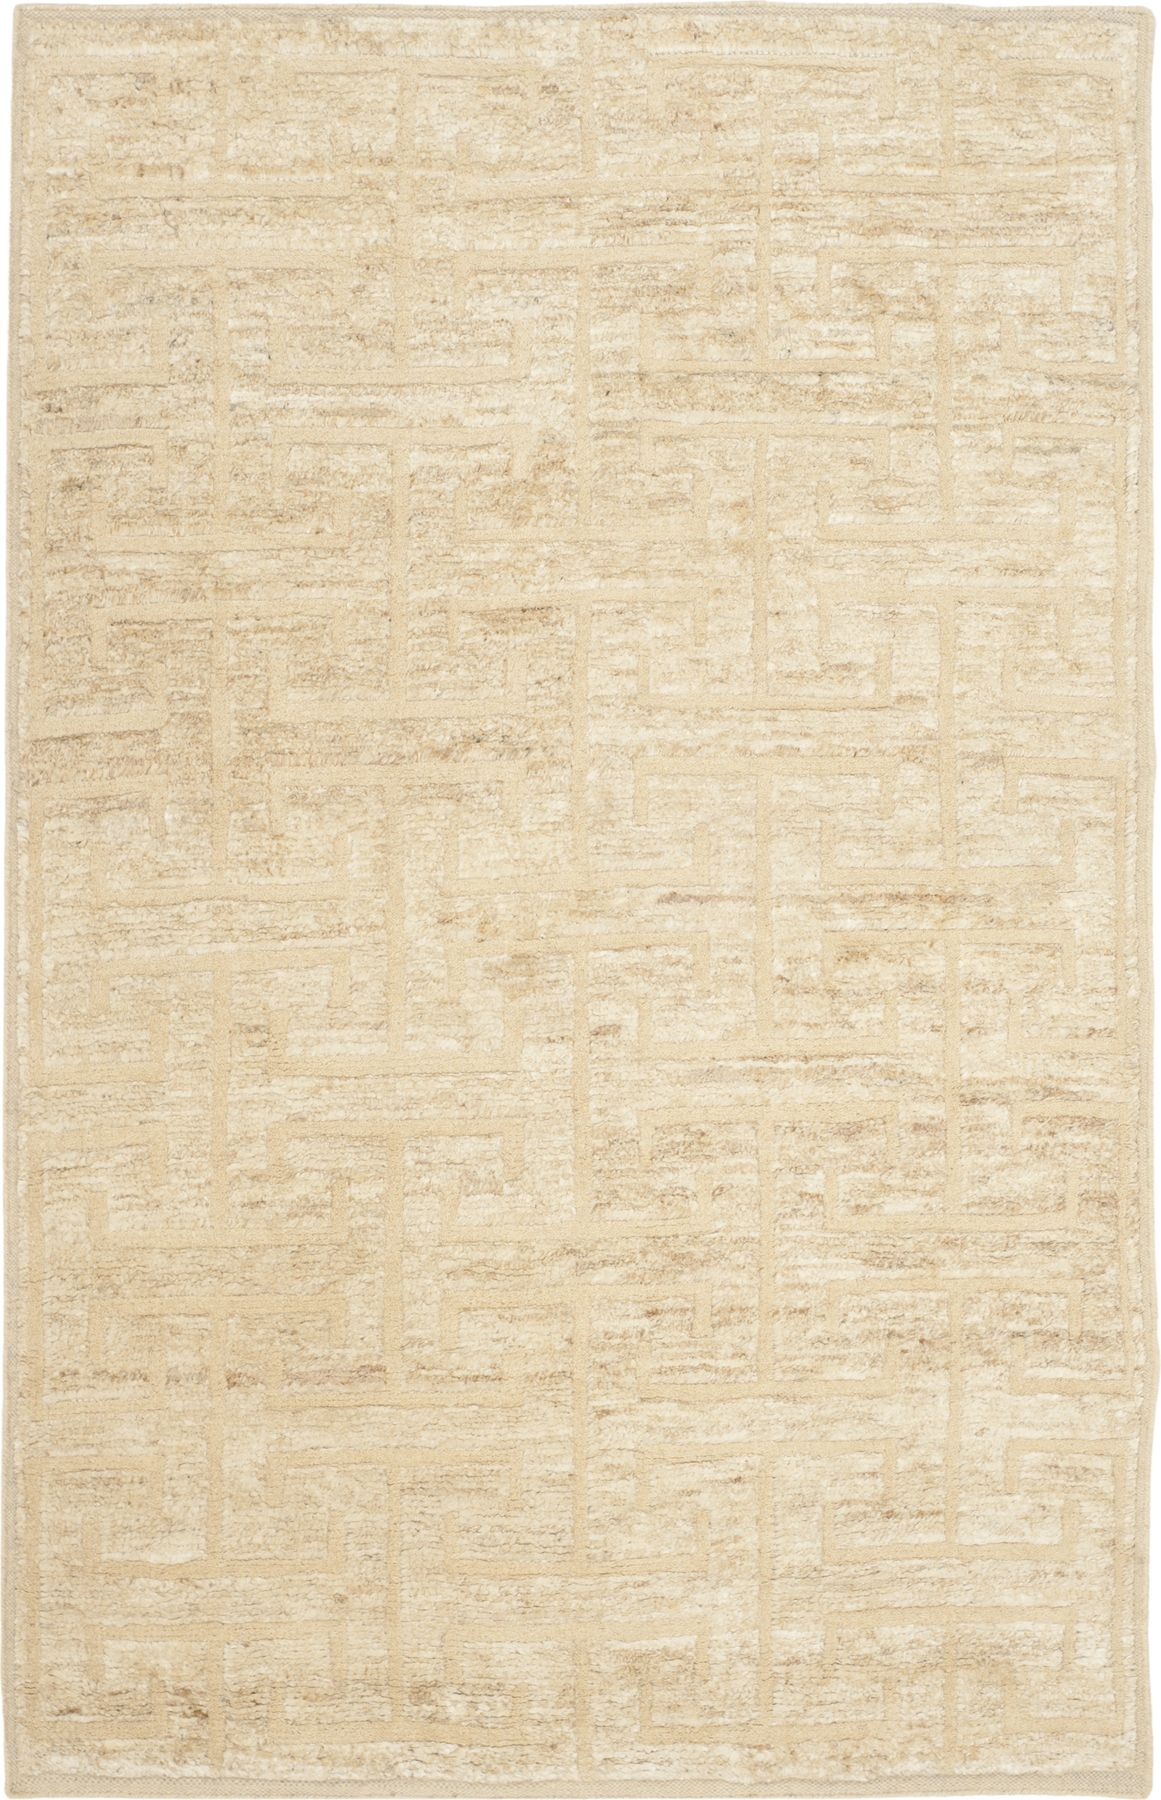 Tgr417a Color Ivory Beige Size 9 X 12 Area Rugs Rugs